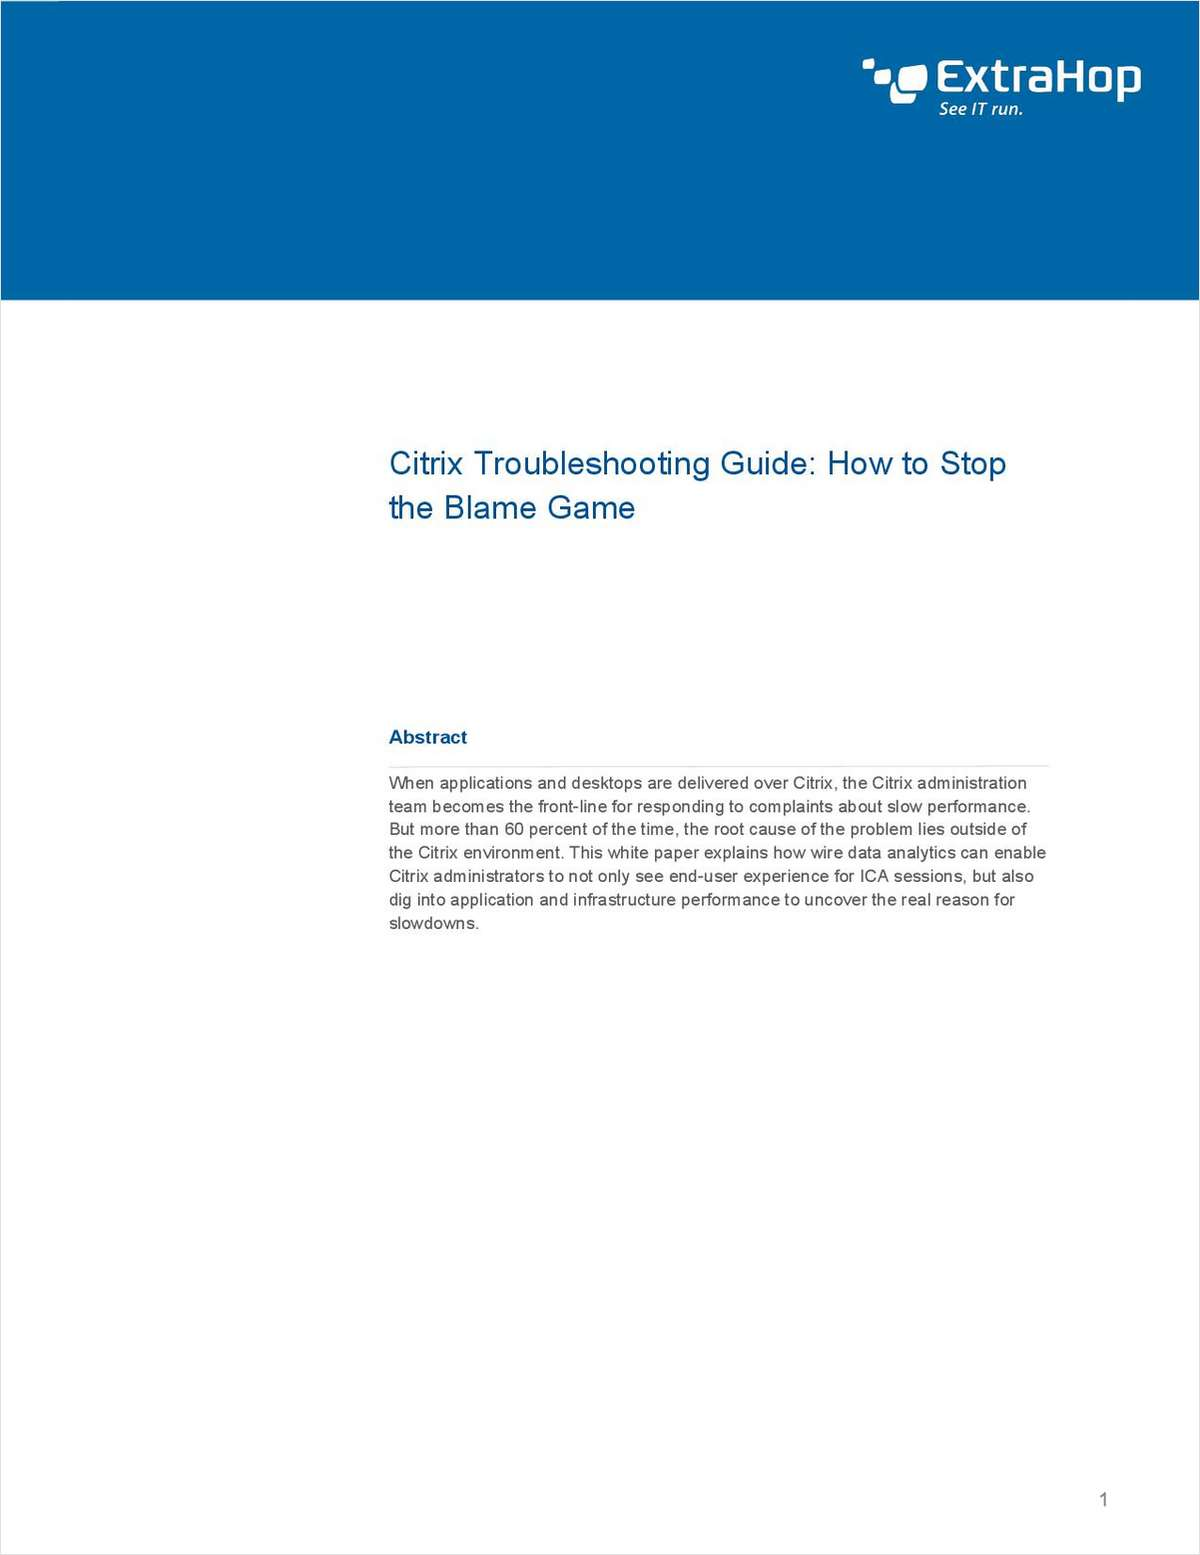 Citrix Troubleshooting Guide: How to Stop the Blame Game